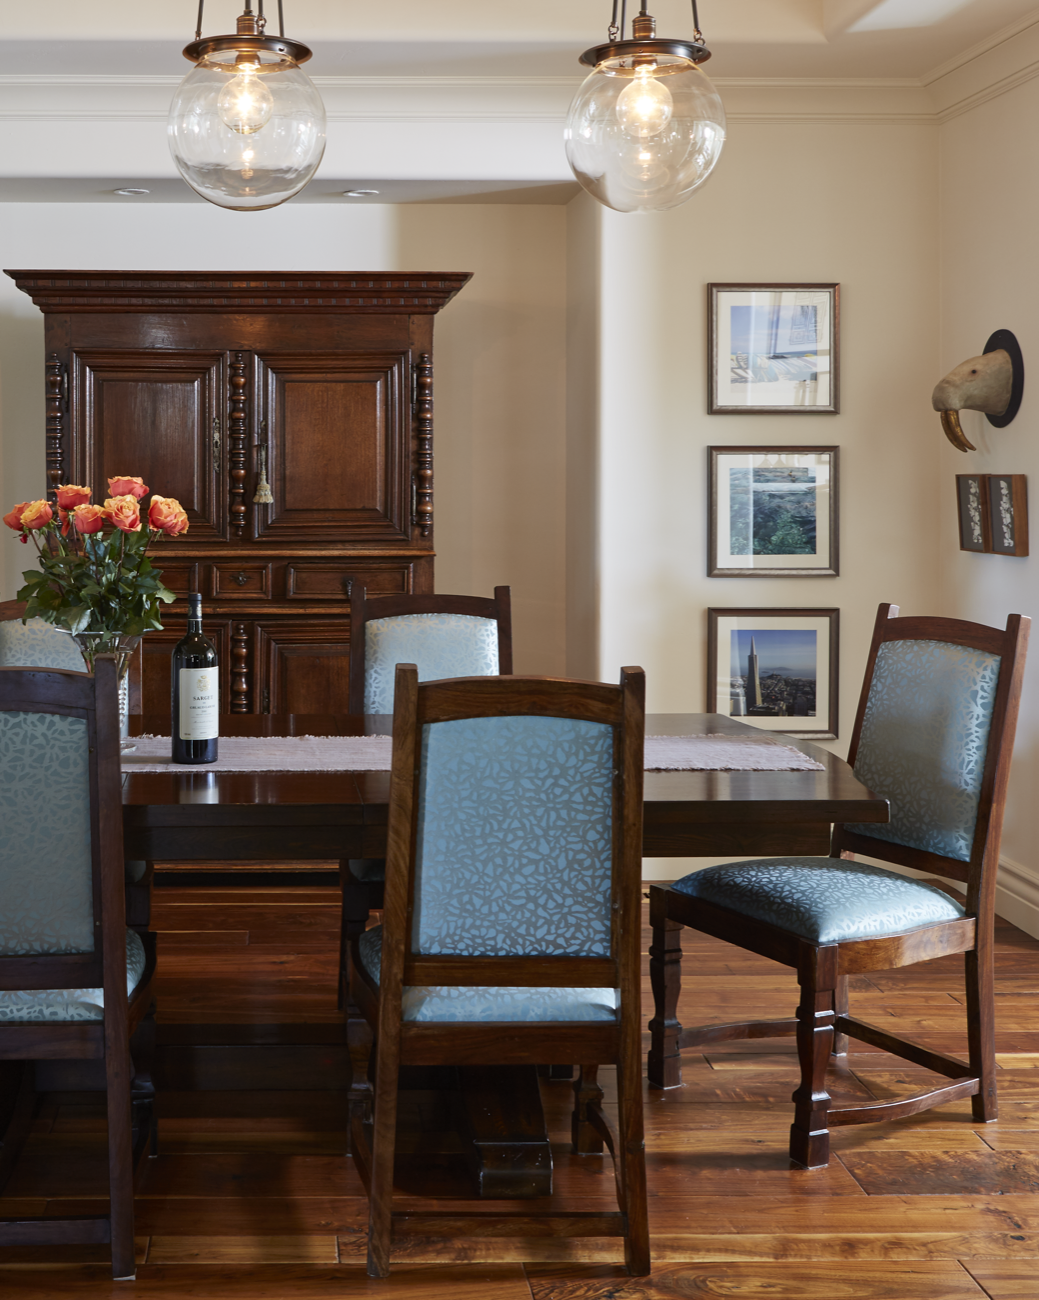 Dining_Room_Chairs-13434 copy.png